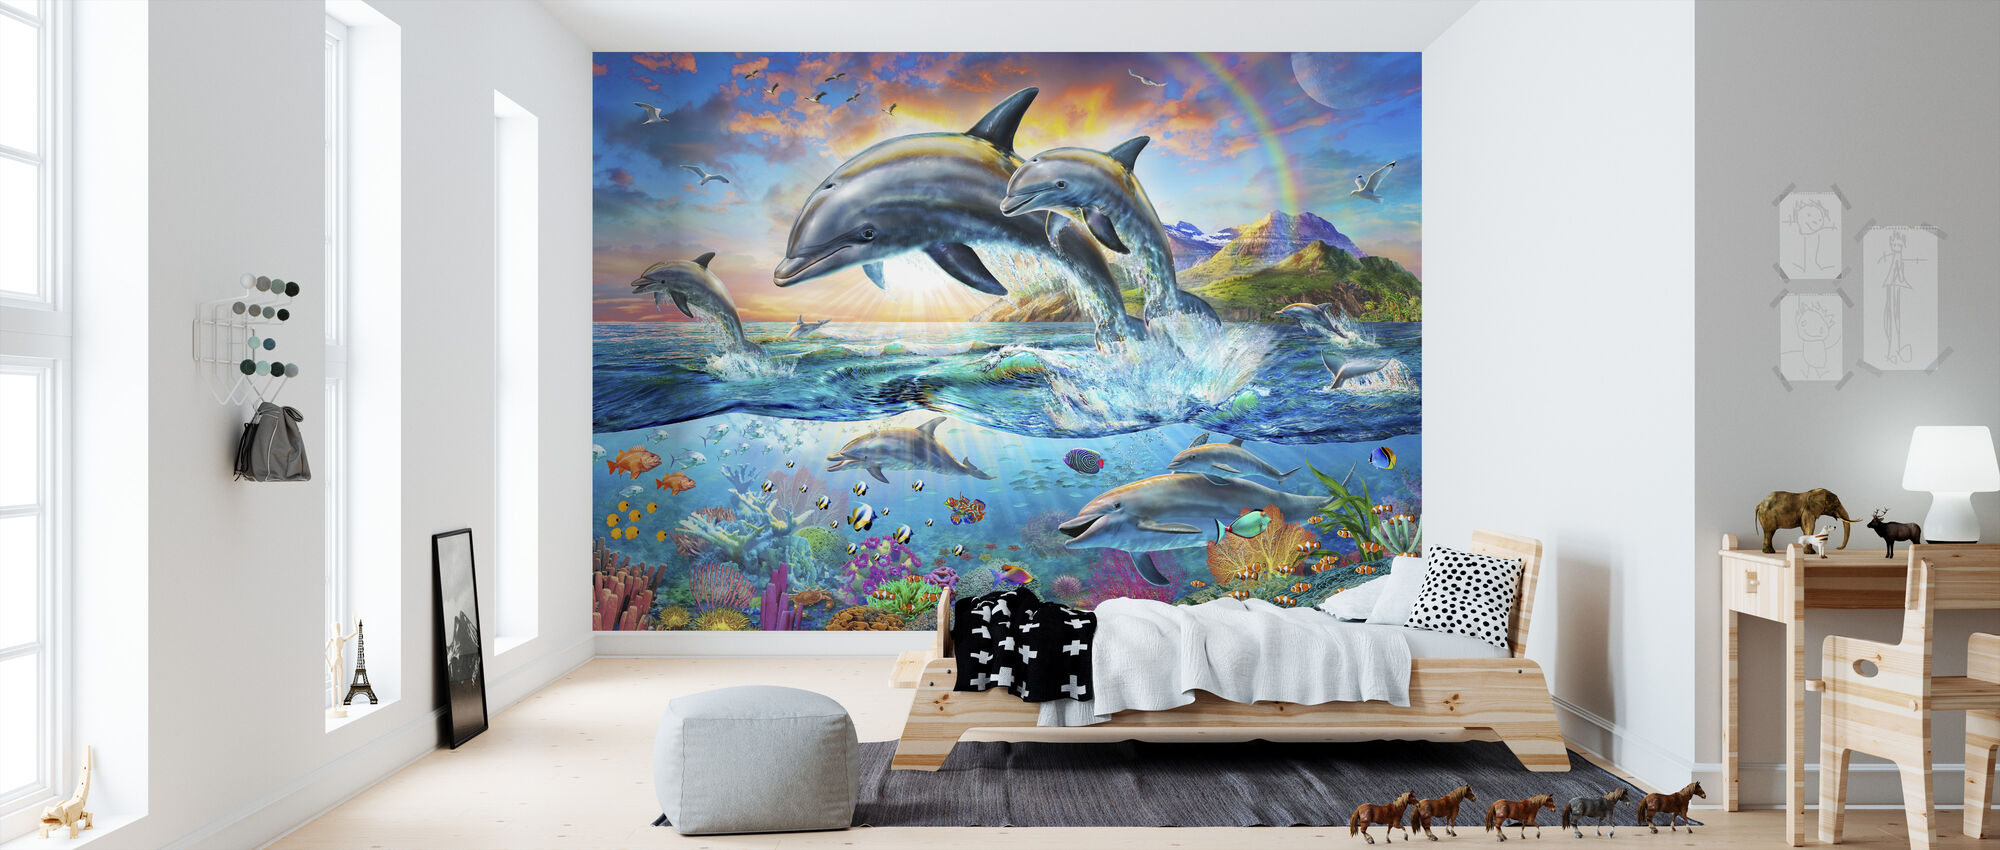 Dolphin Family - Wallpaper - Kids Room